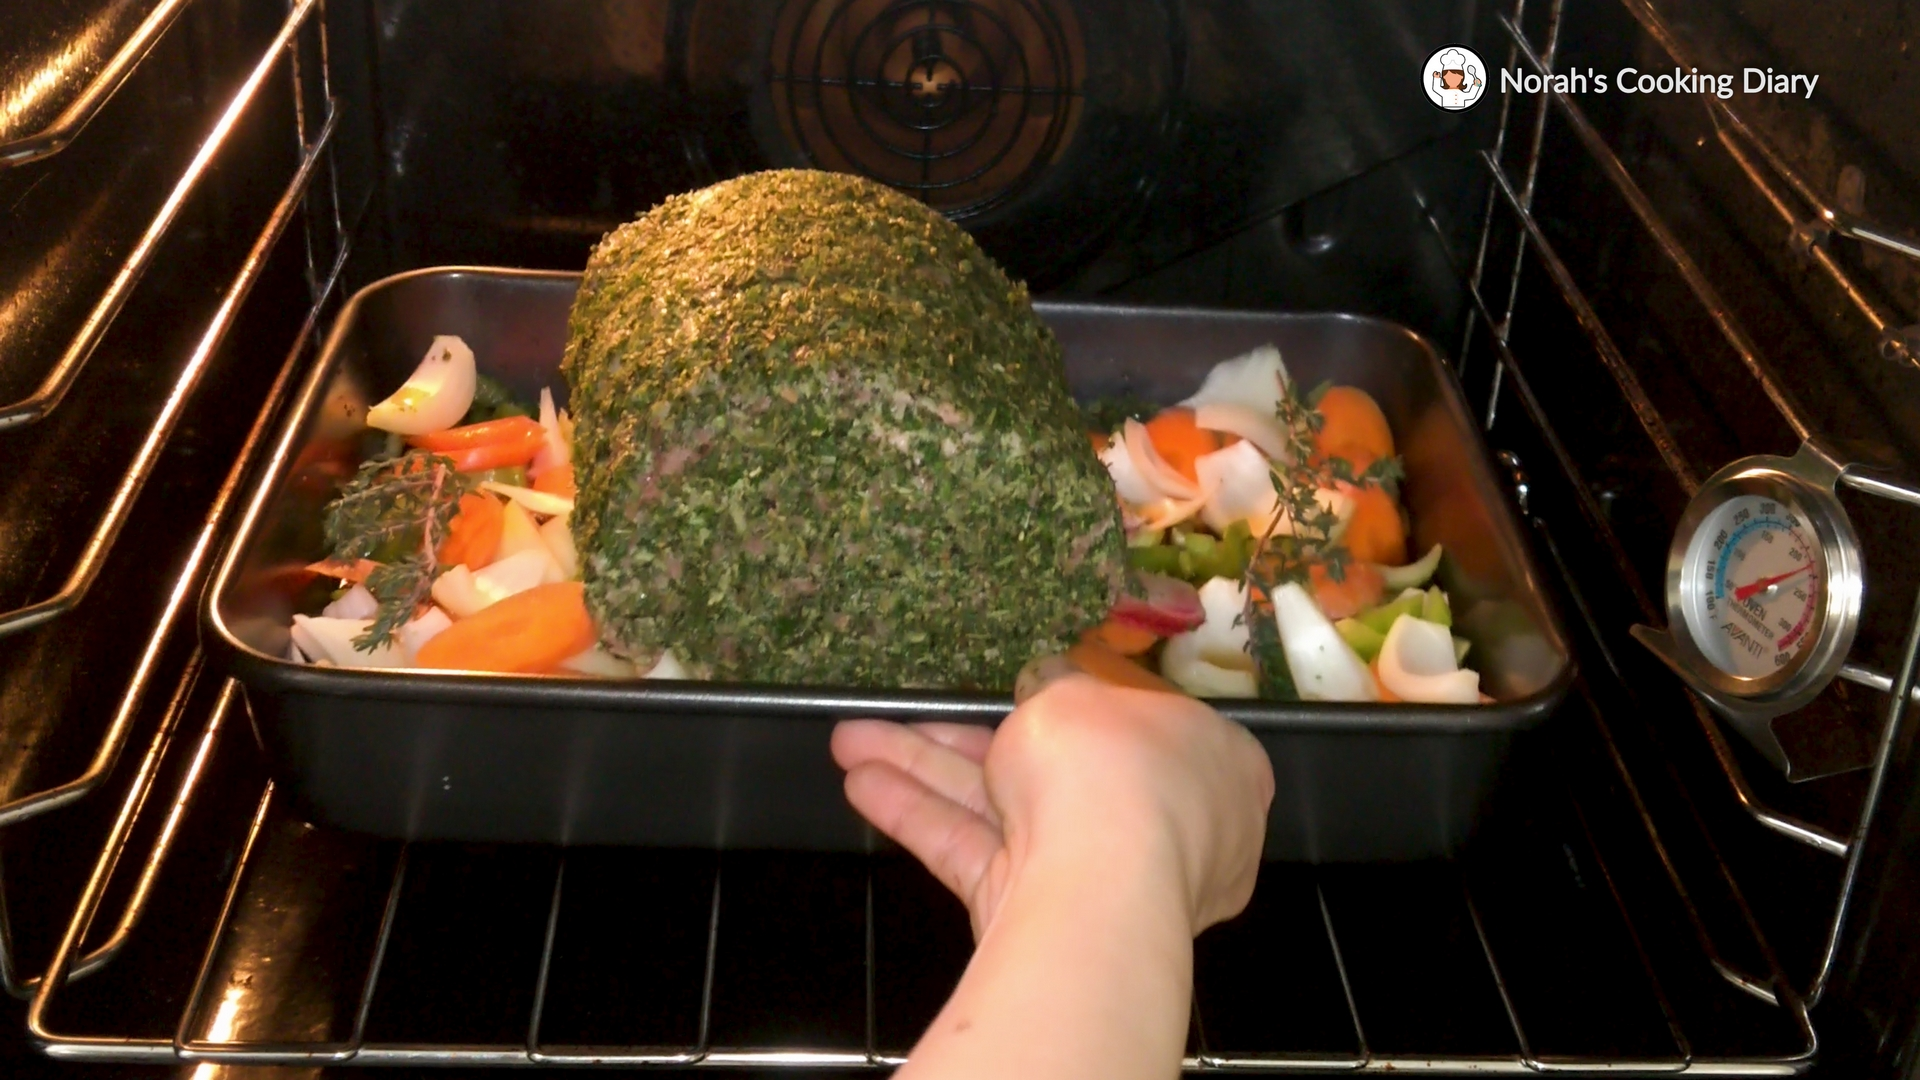 Roast Beef With Herb-Mustard Crust Pic 6